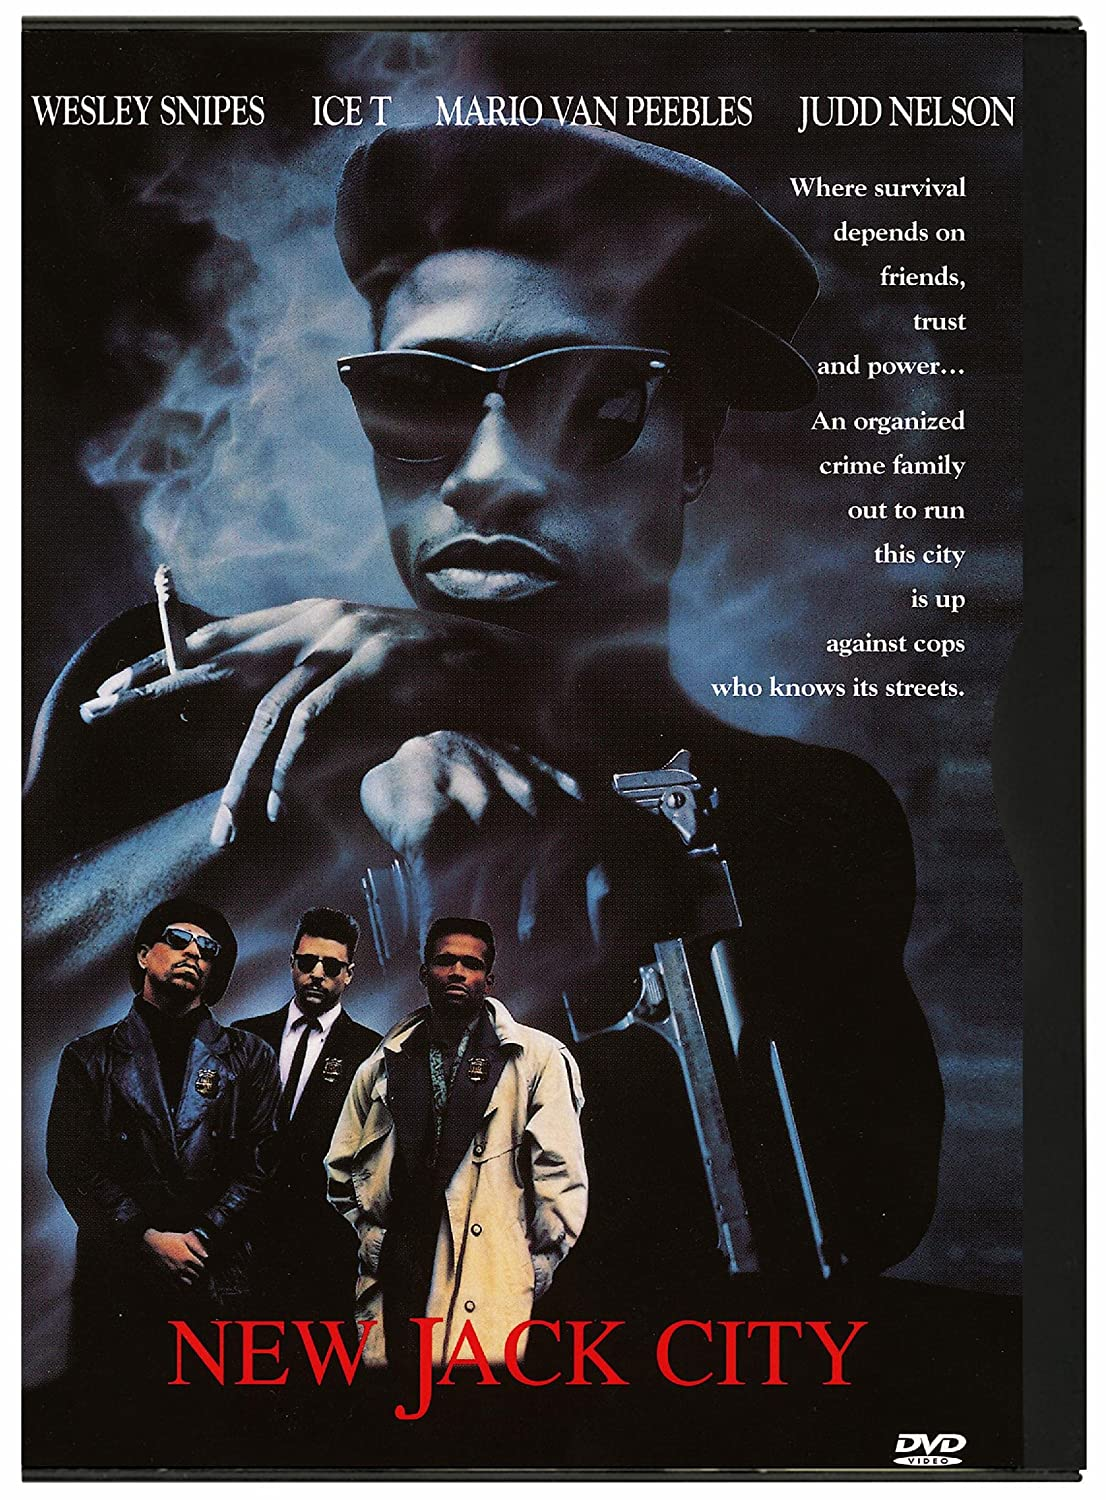 New Jack City / Říše drog - DVD /plast/